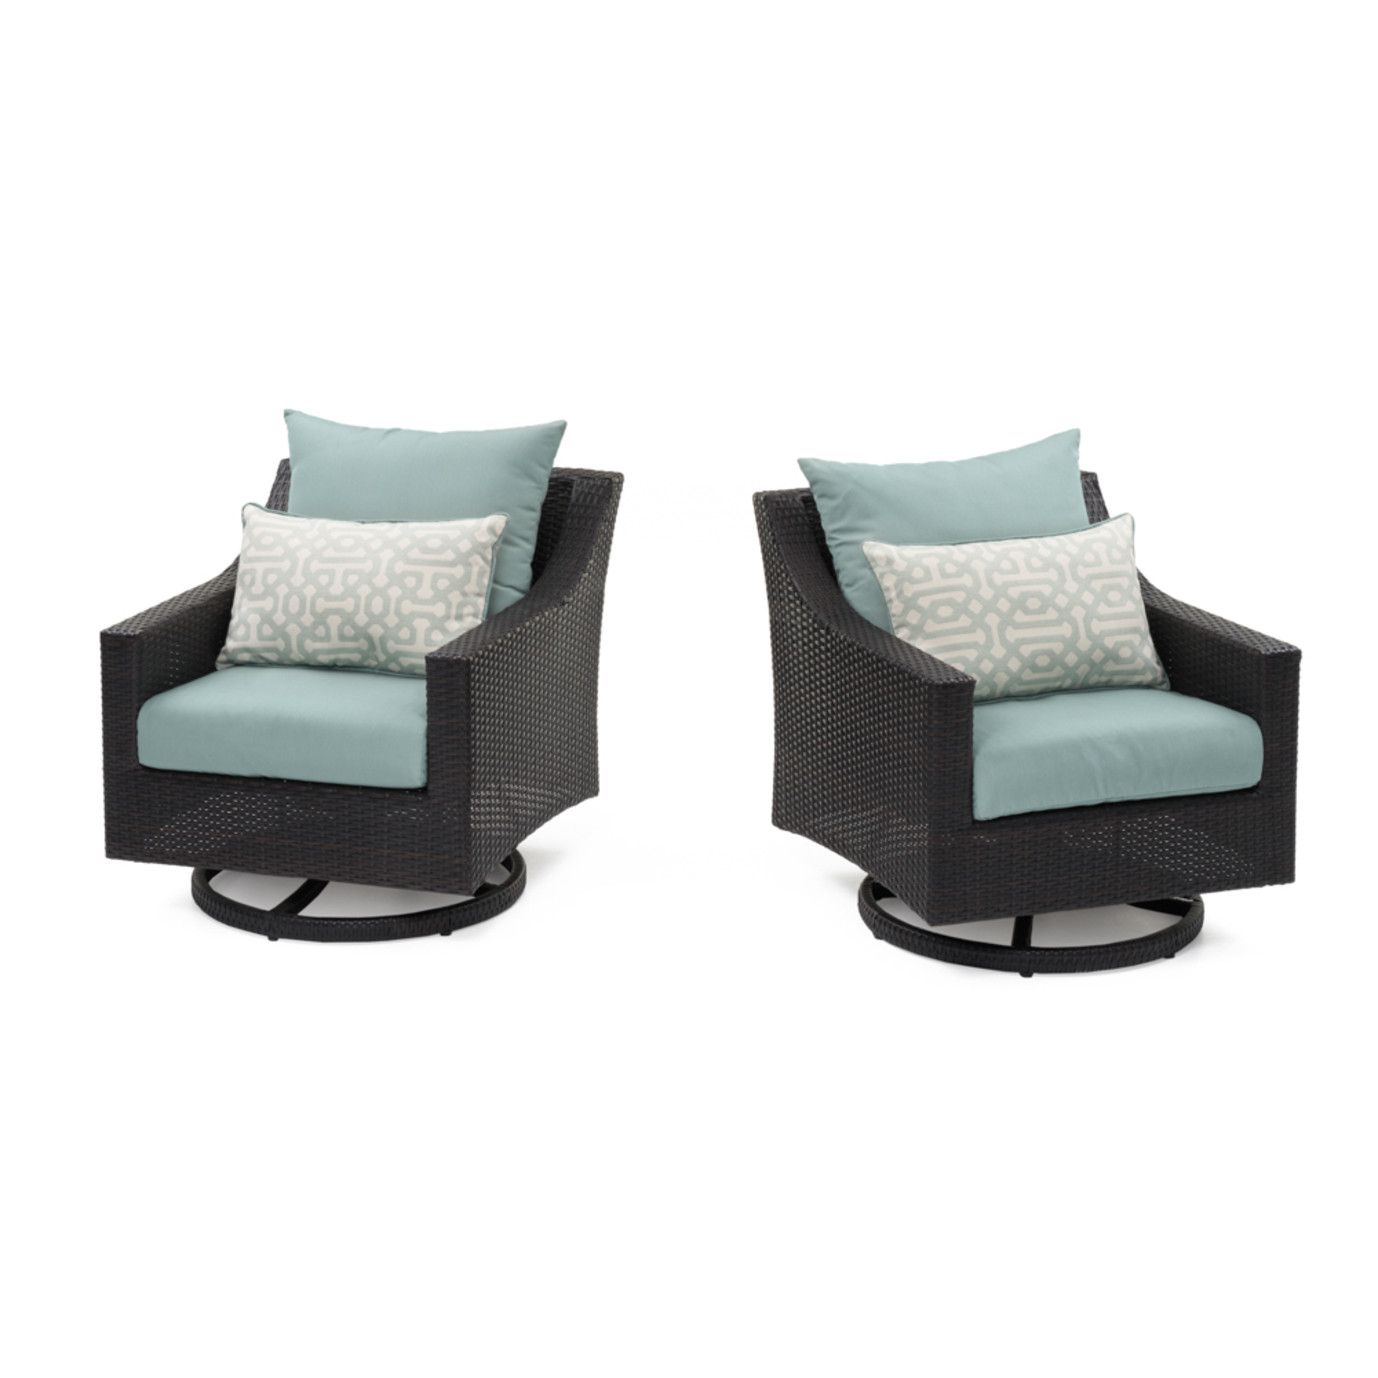 Deco™ Motion Club Chairs - Spa Blue